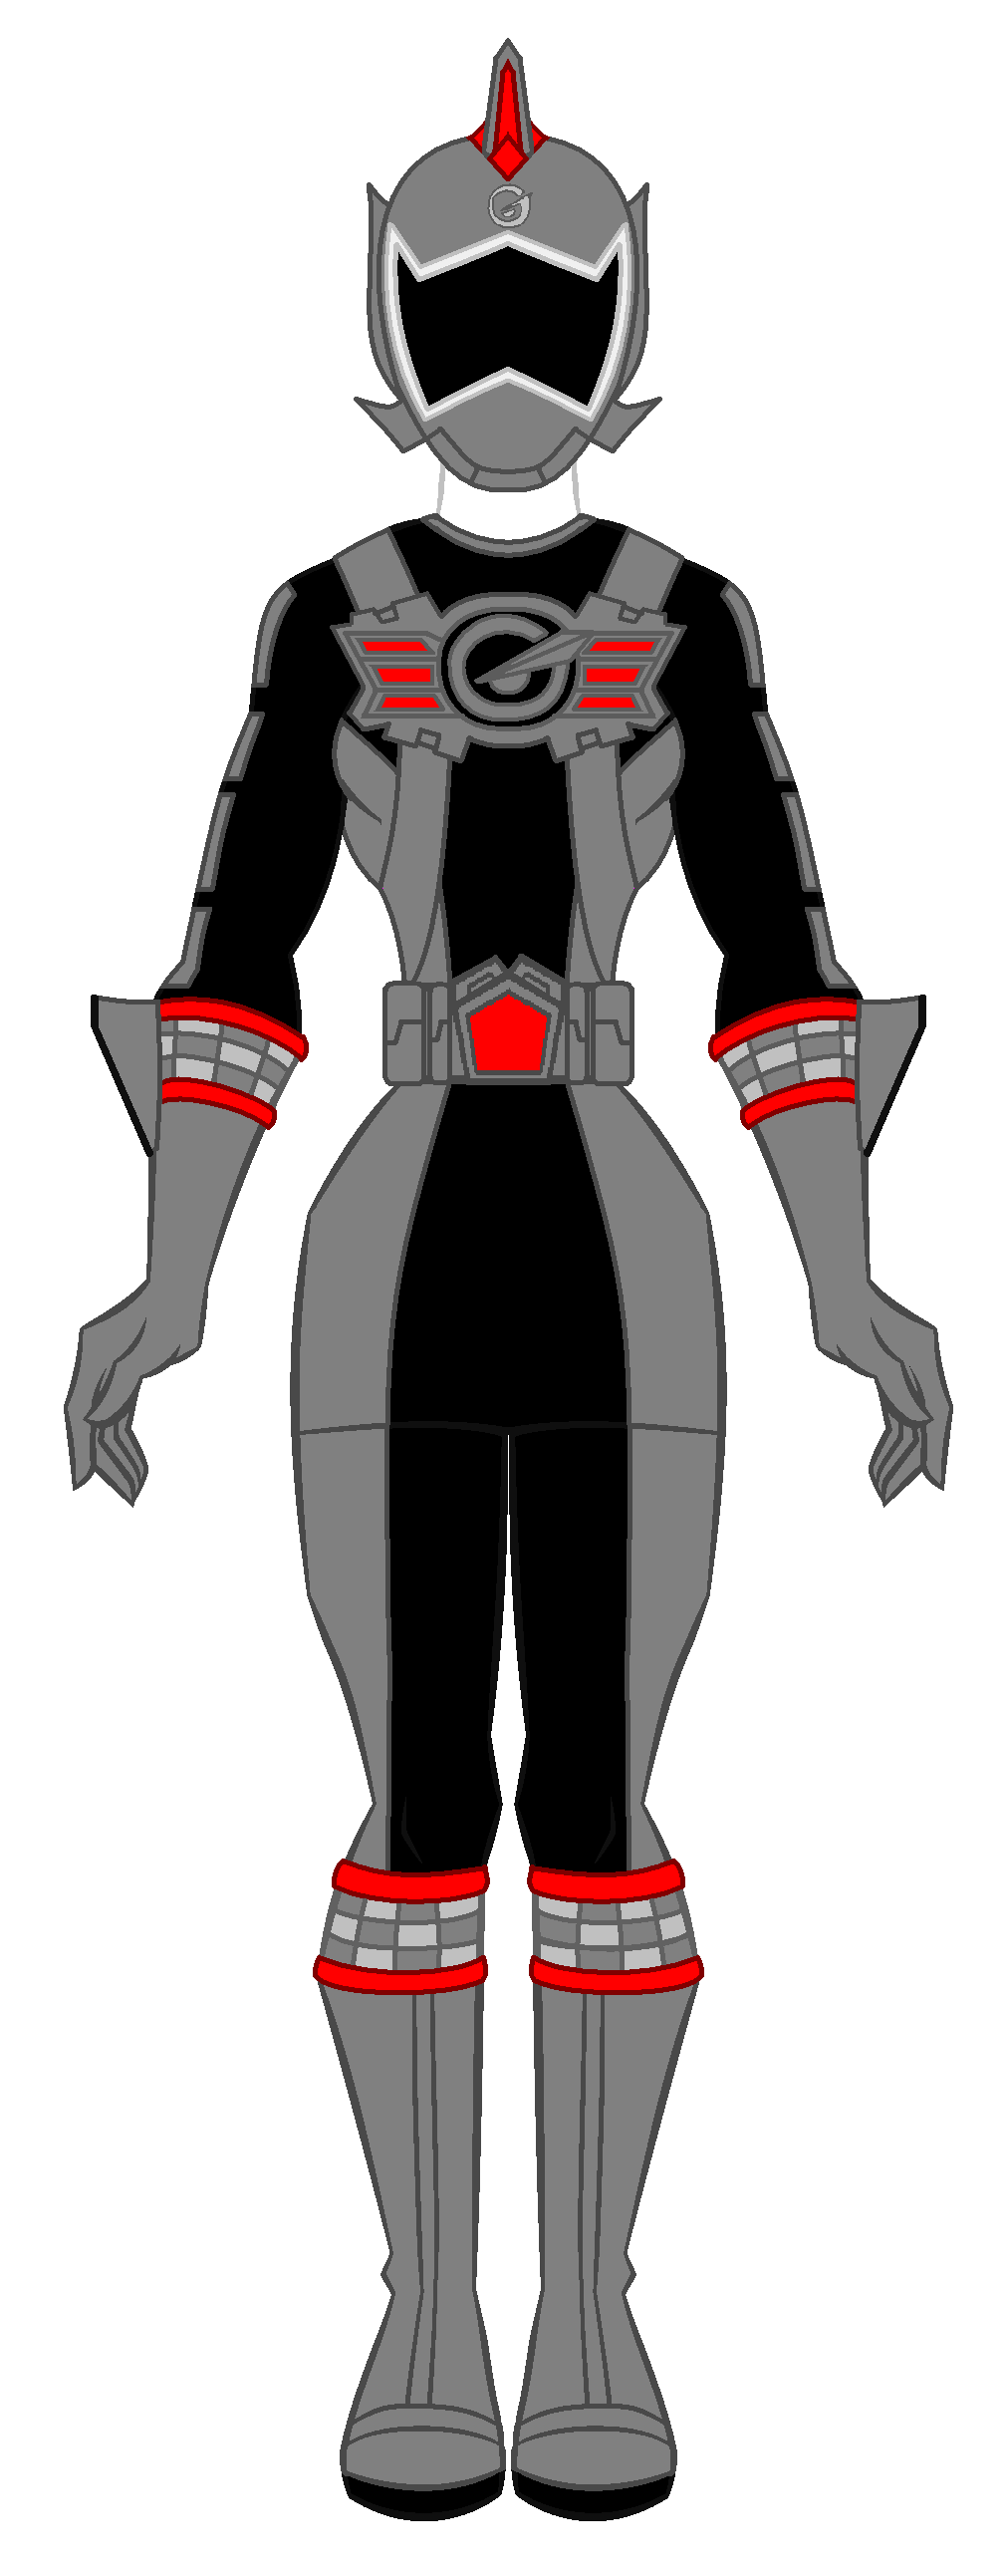 17 power ranger rpm silver ranger by powerrangersworld999 on deviantart 17 power ranger rpm silver ranger by